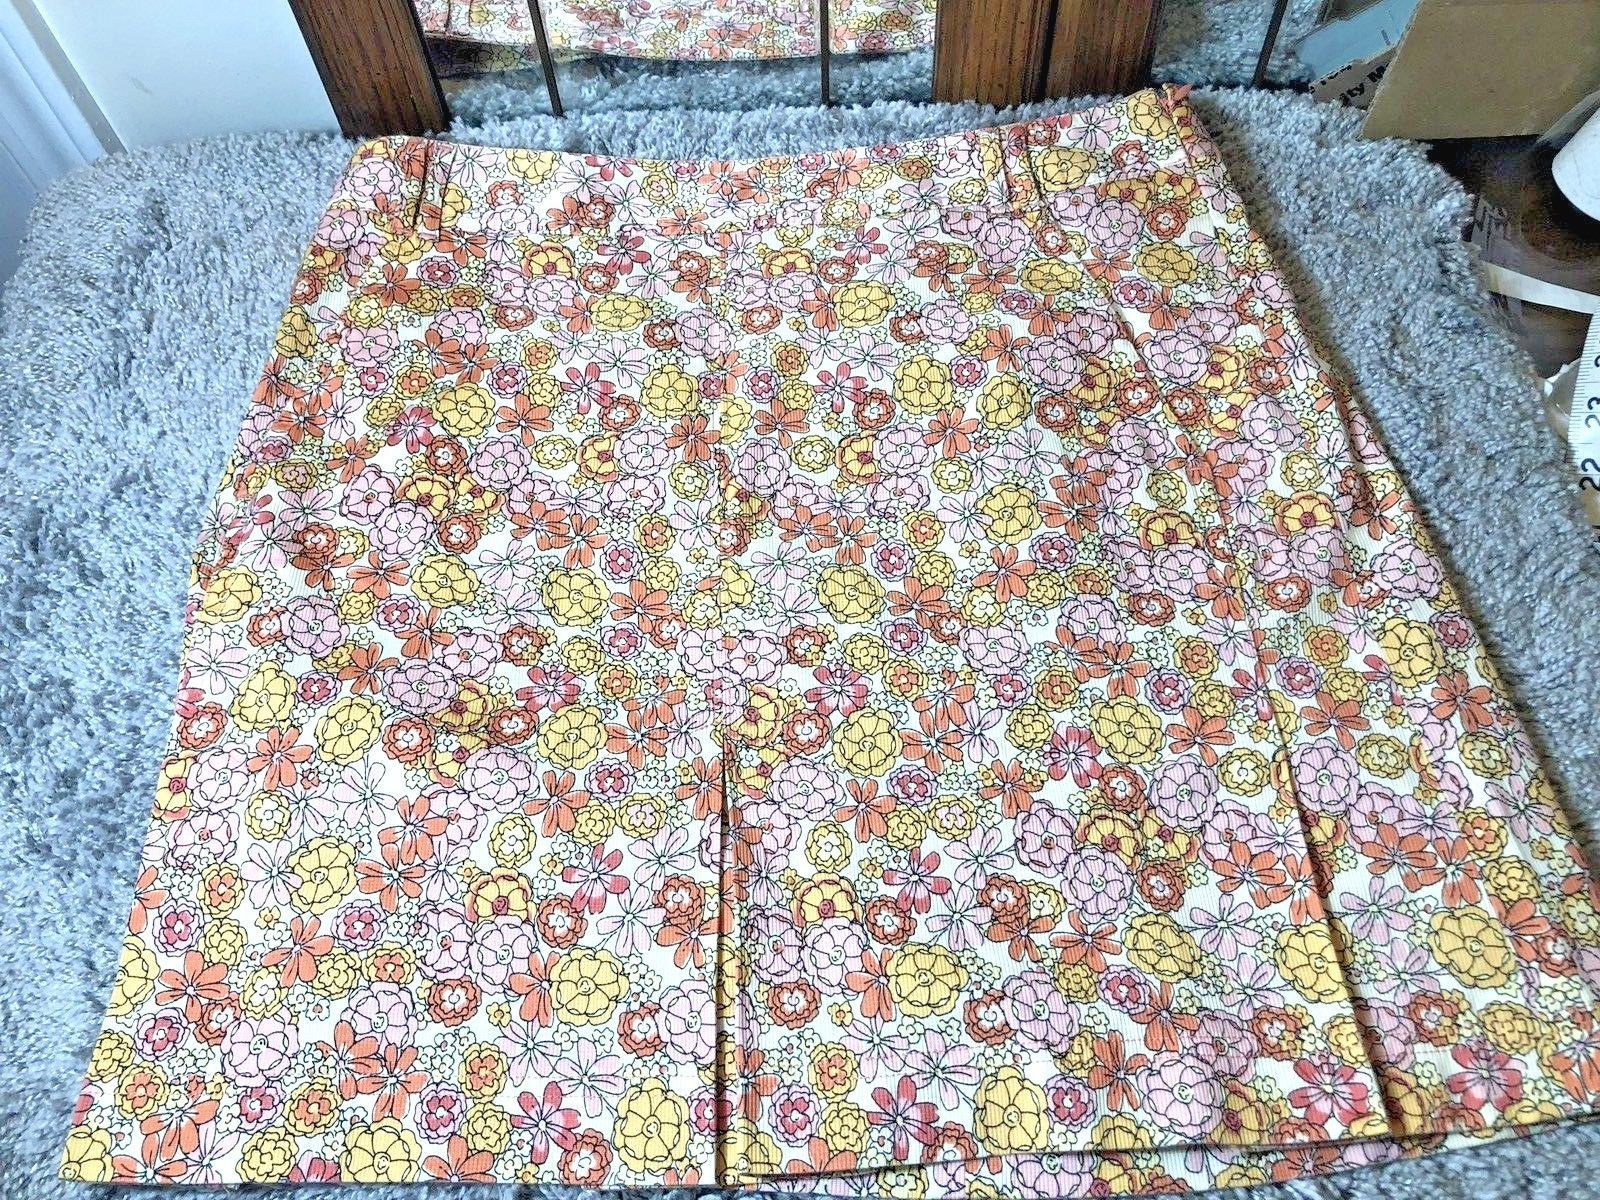 Ann Taylor LOFT Womens Floral Skirt Size 8 Orange & Pink Floral Print Cotton